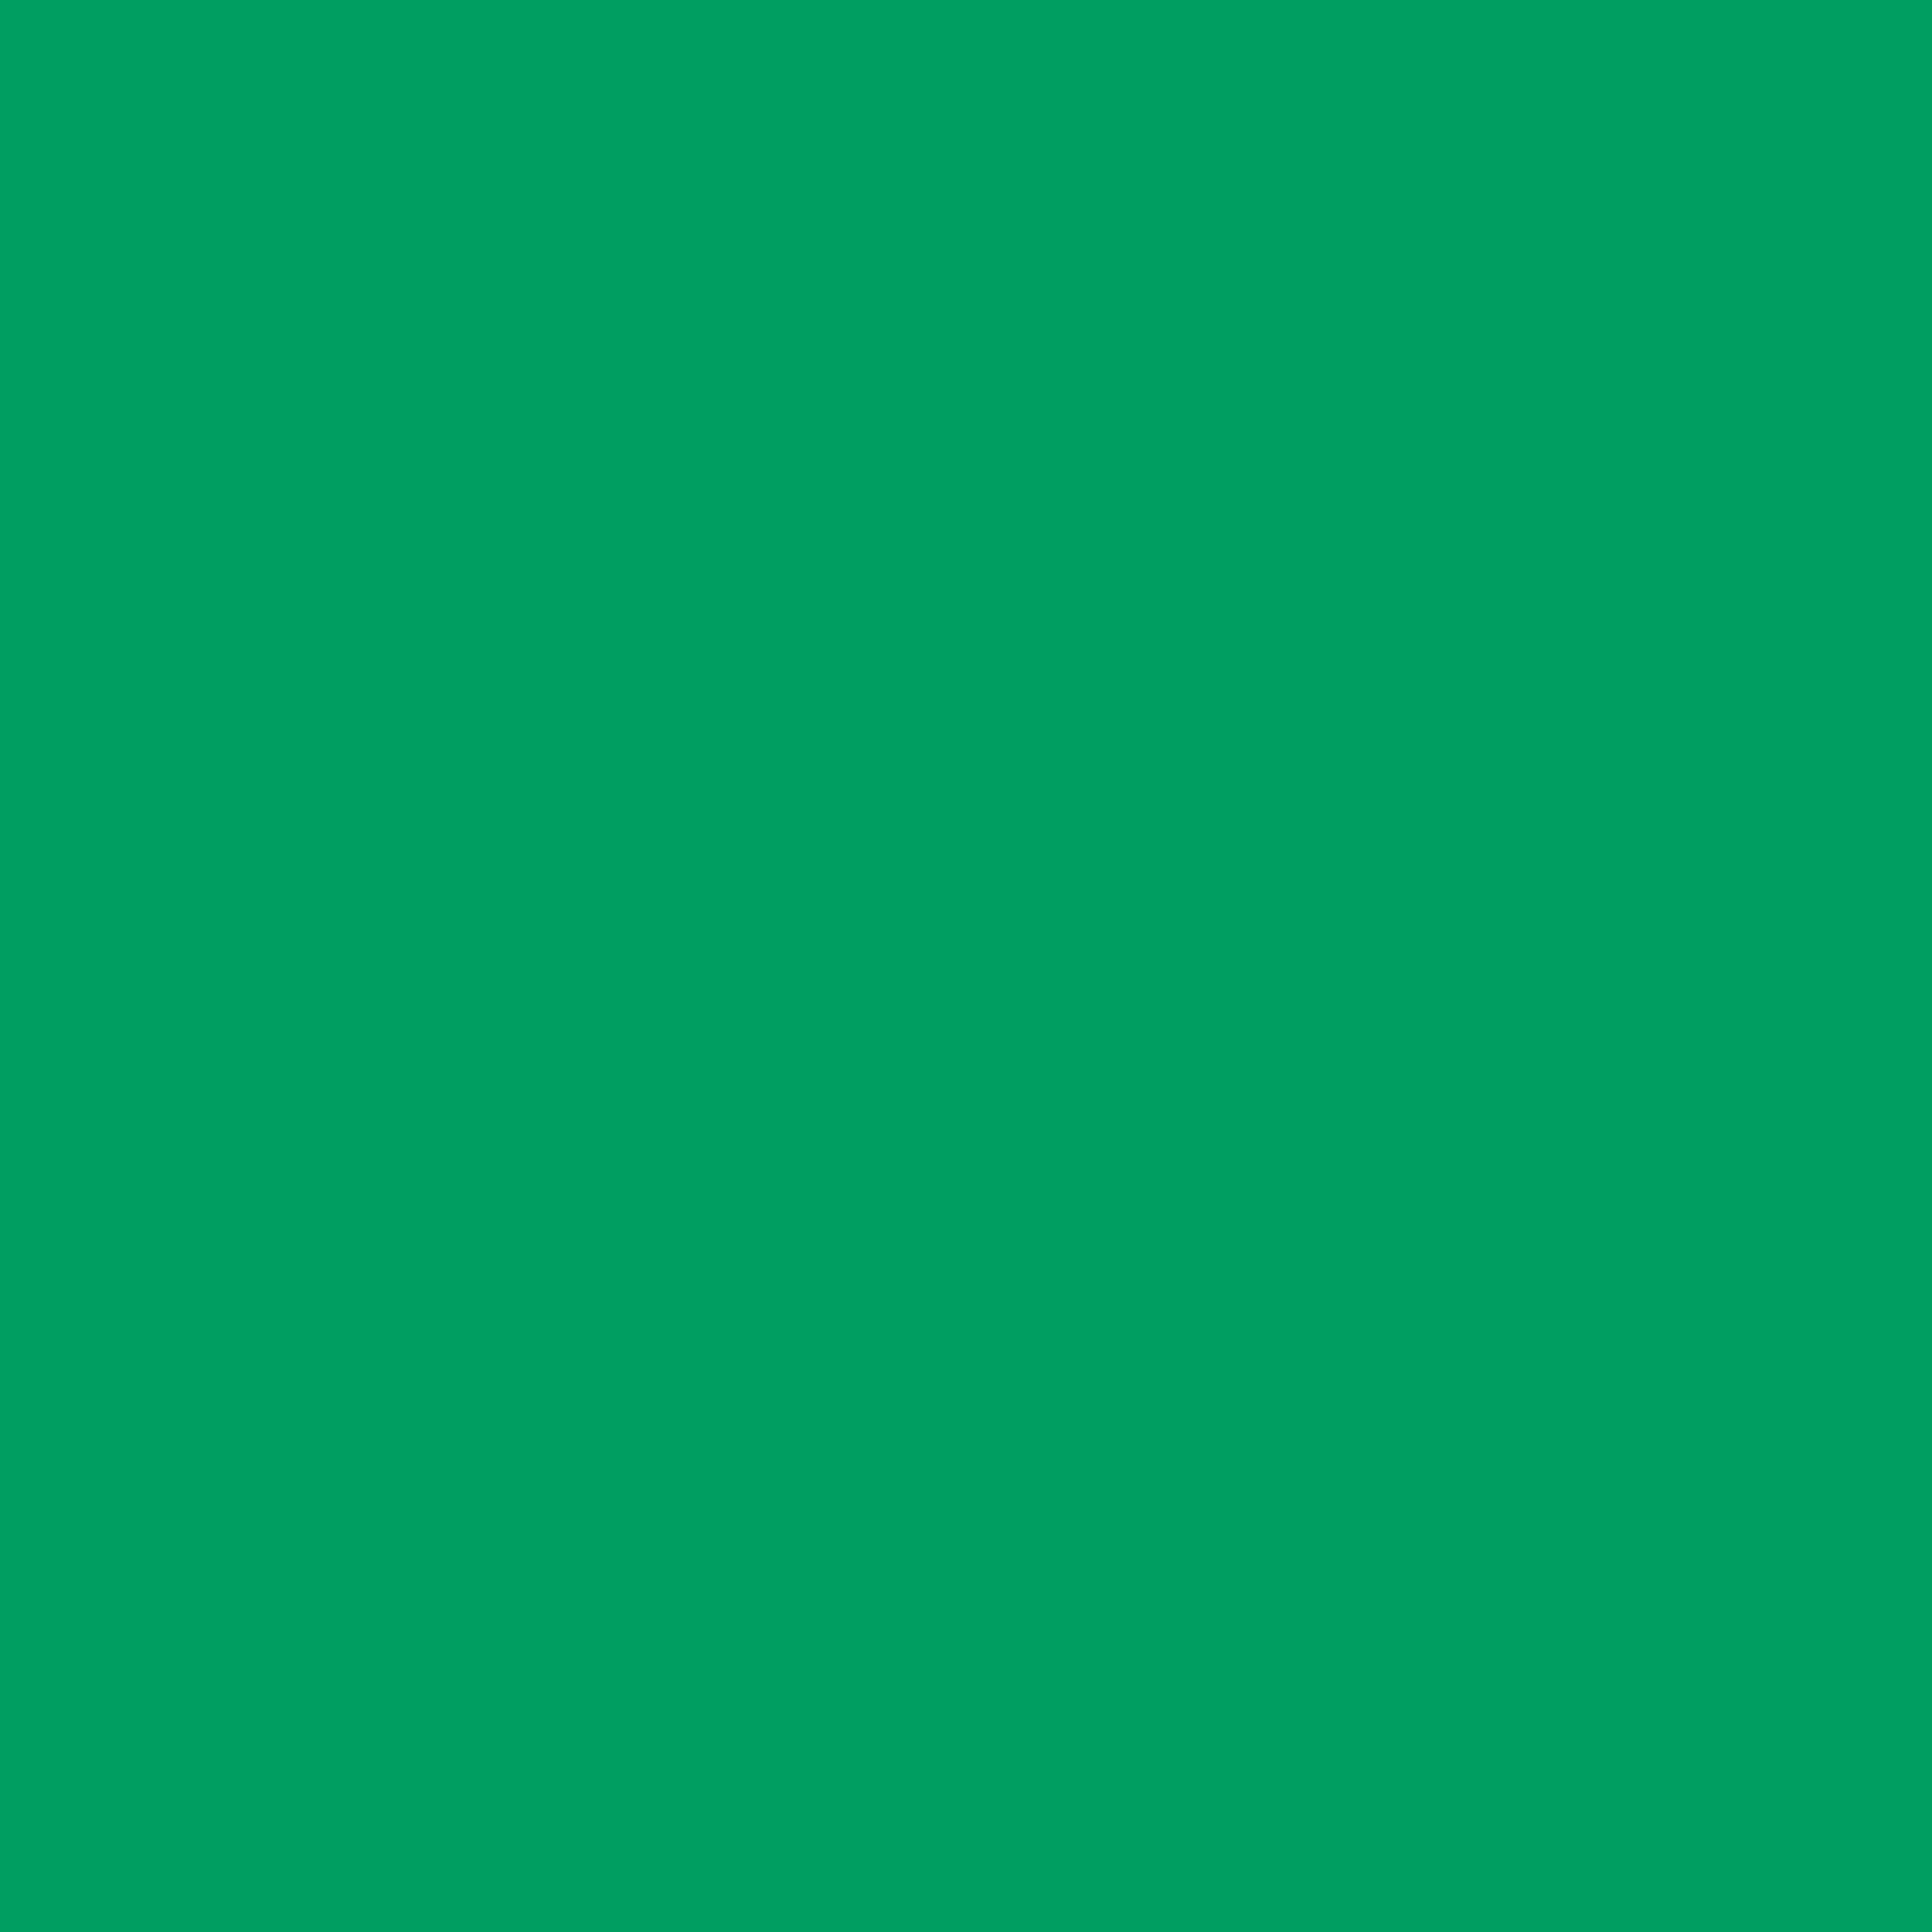 2732x2732 Shamrock Green Solid Color Background